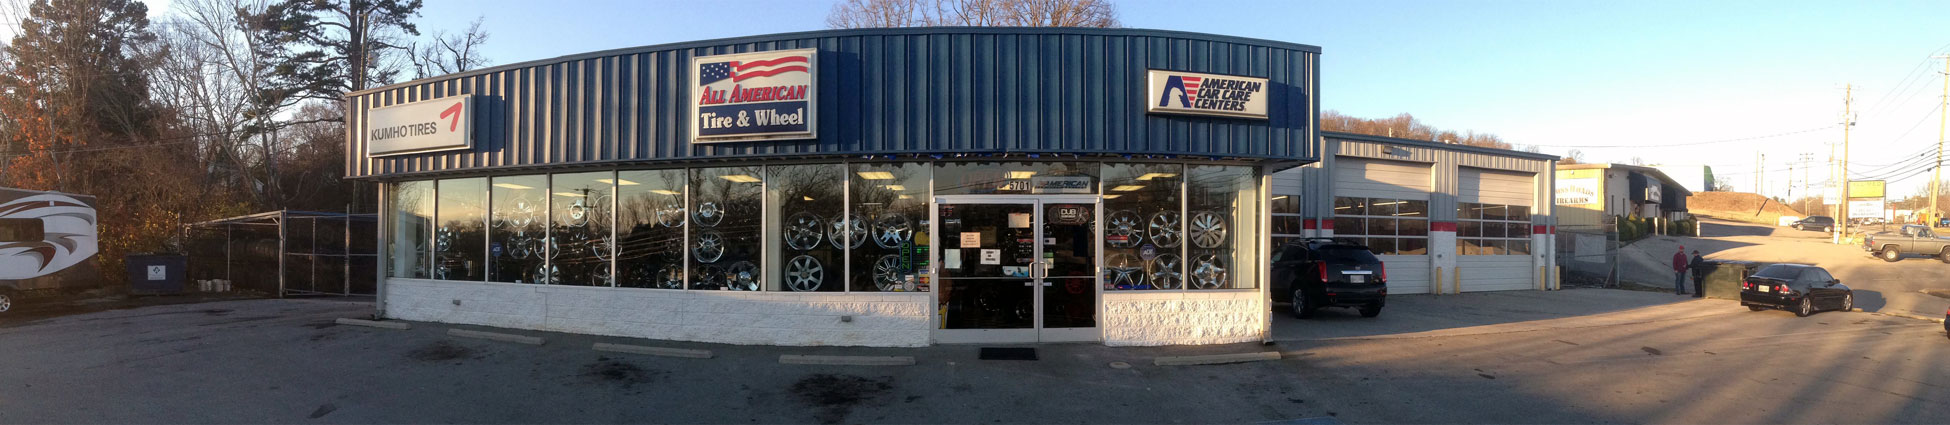 What products and services do American Tire Distributors offer?